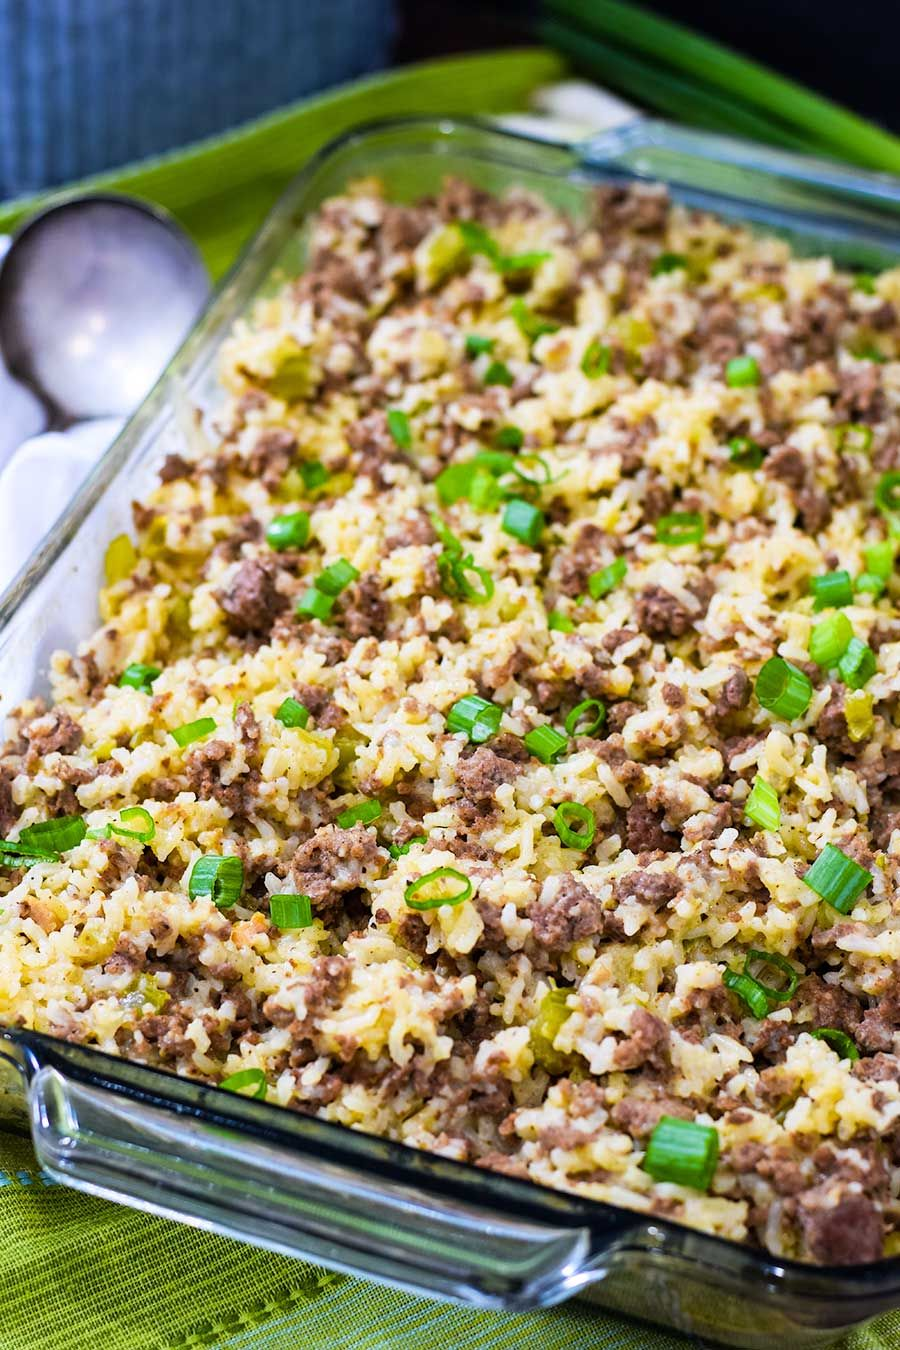 Easy Ground Beef And Sausage Rice Casserole Is Simple To Make With Tons Of Flavor In 2020 Ground Beef Sausage Recipe Rice Casserole Recipes Sausage And Rice Casserole